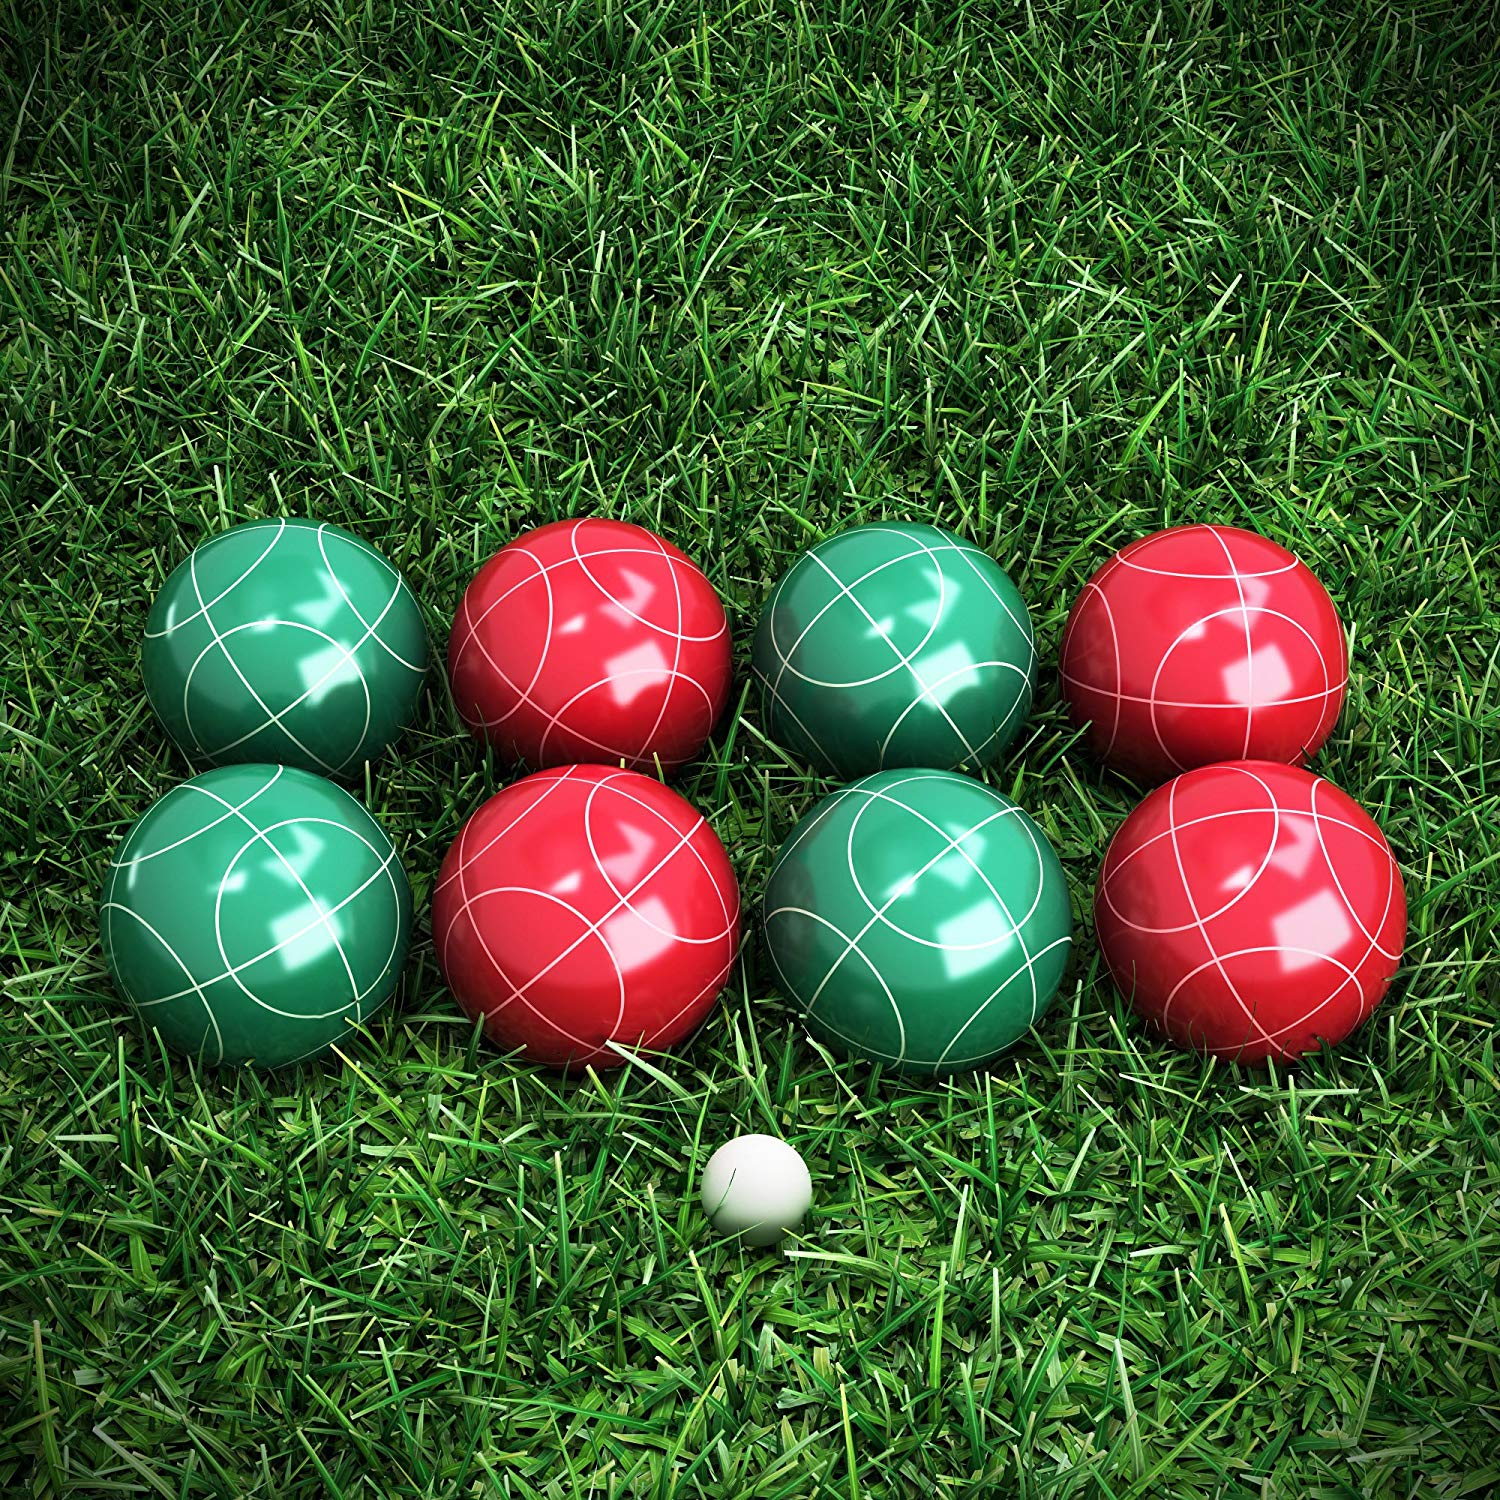 Bocce Ball Set available on Amazon